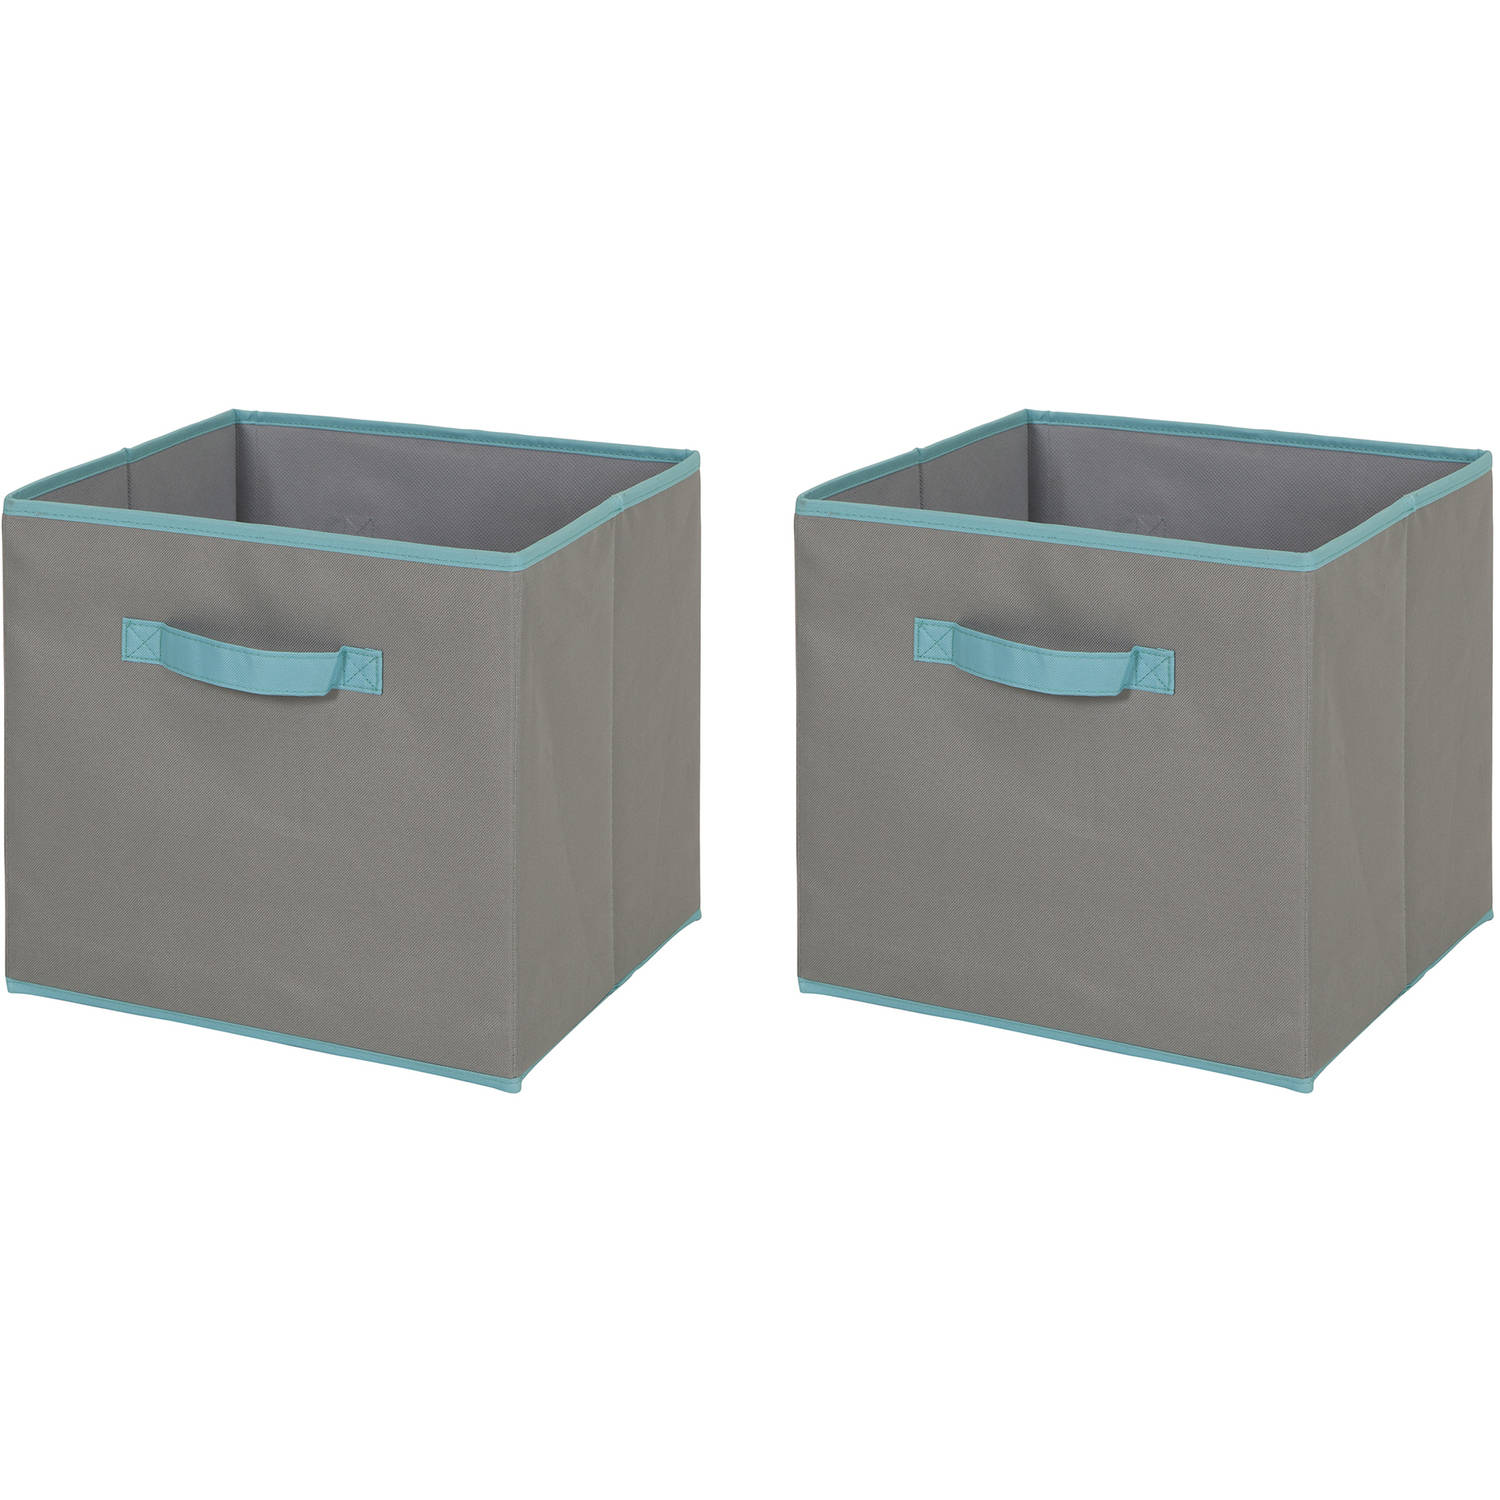 South Shore Fabric Storage Bin, 2 Pack, Large Size, Gray And Turquoise